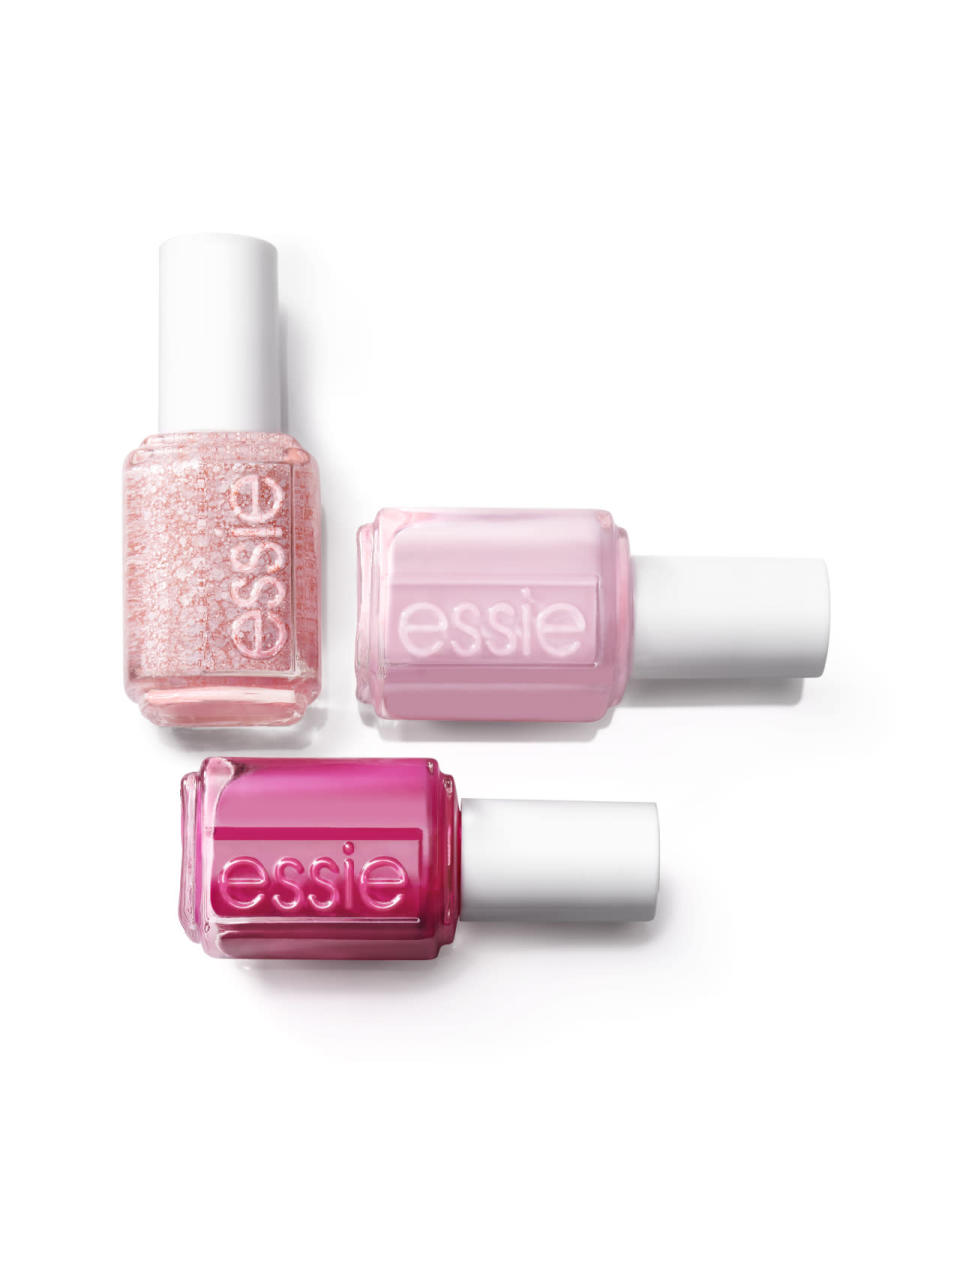 Essie's produced three polishes for the month: Pinking About You, a pale pink confetti topcoat, I Pink I Can, the perfect neutral shade for a mani/pedi, or Pink Happy, a vivacious shade the color of pink tulips.